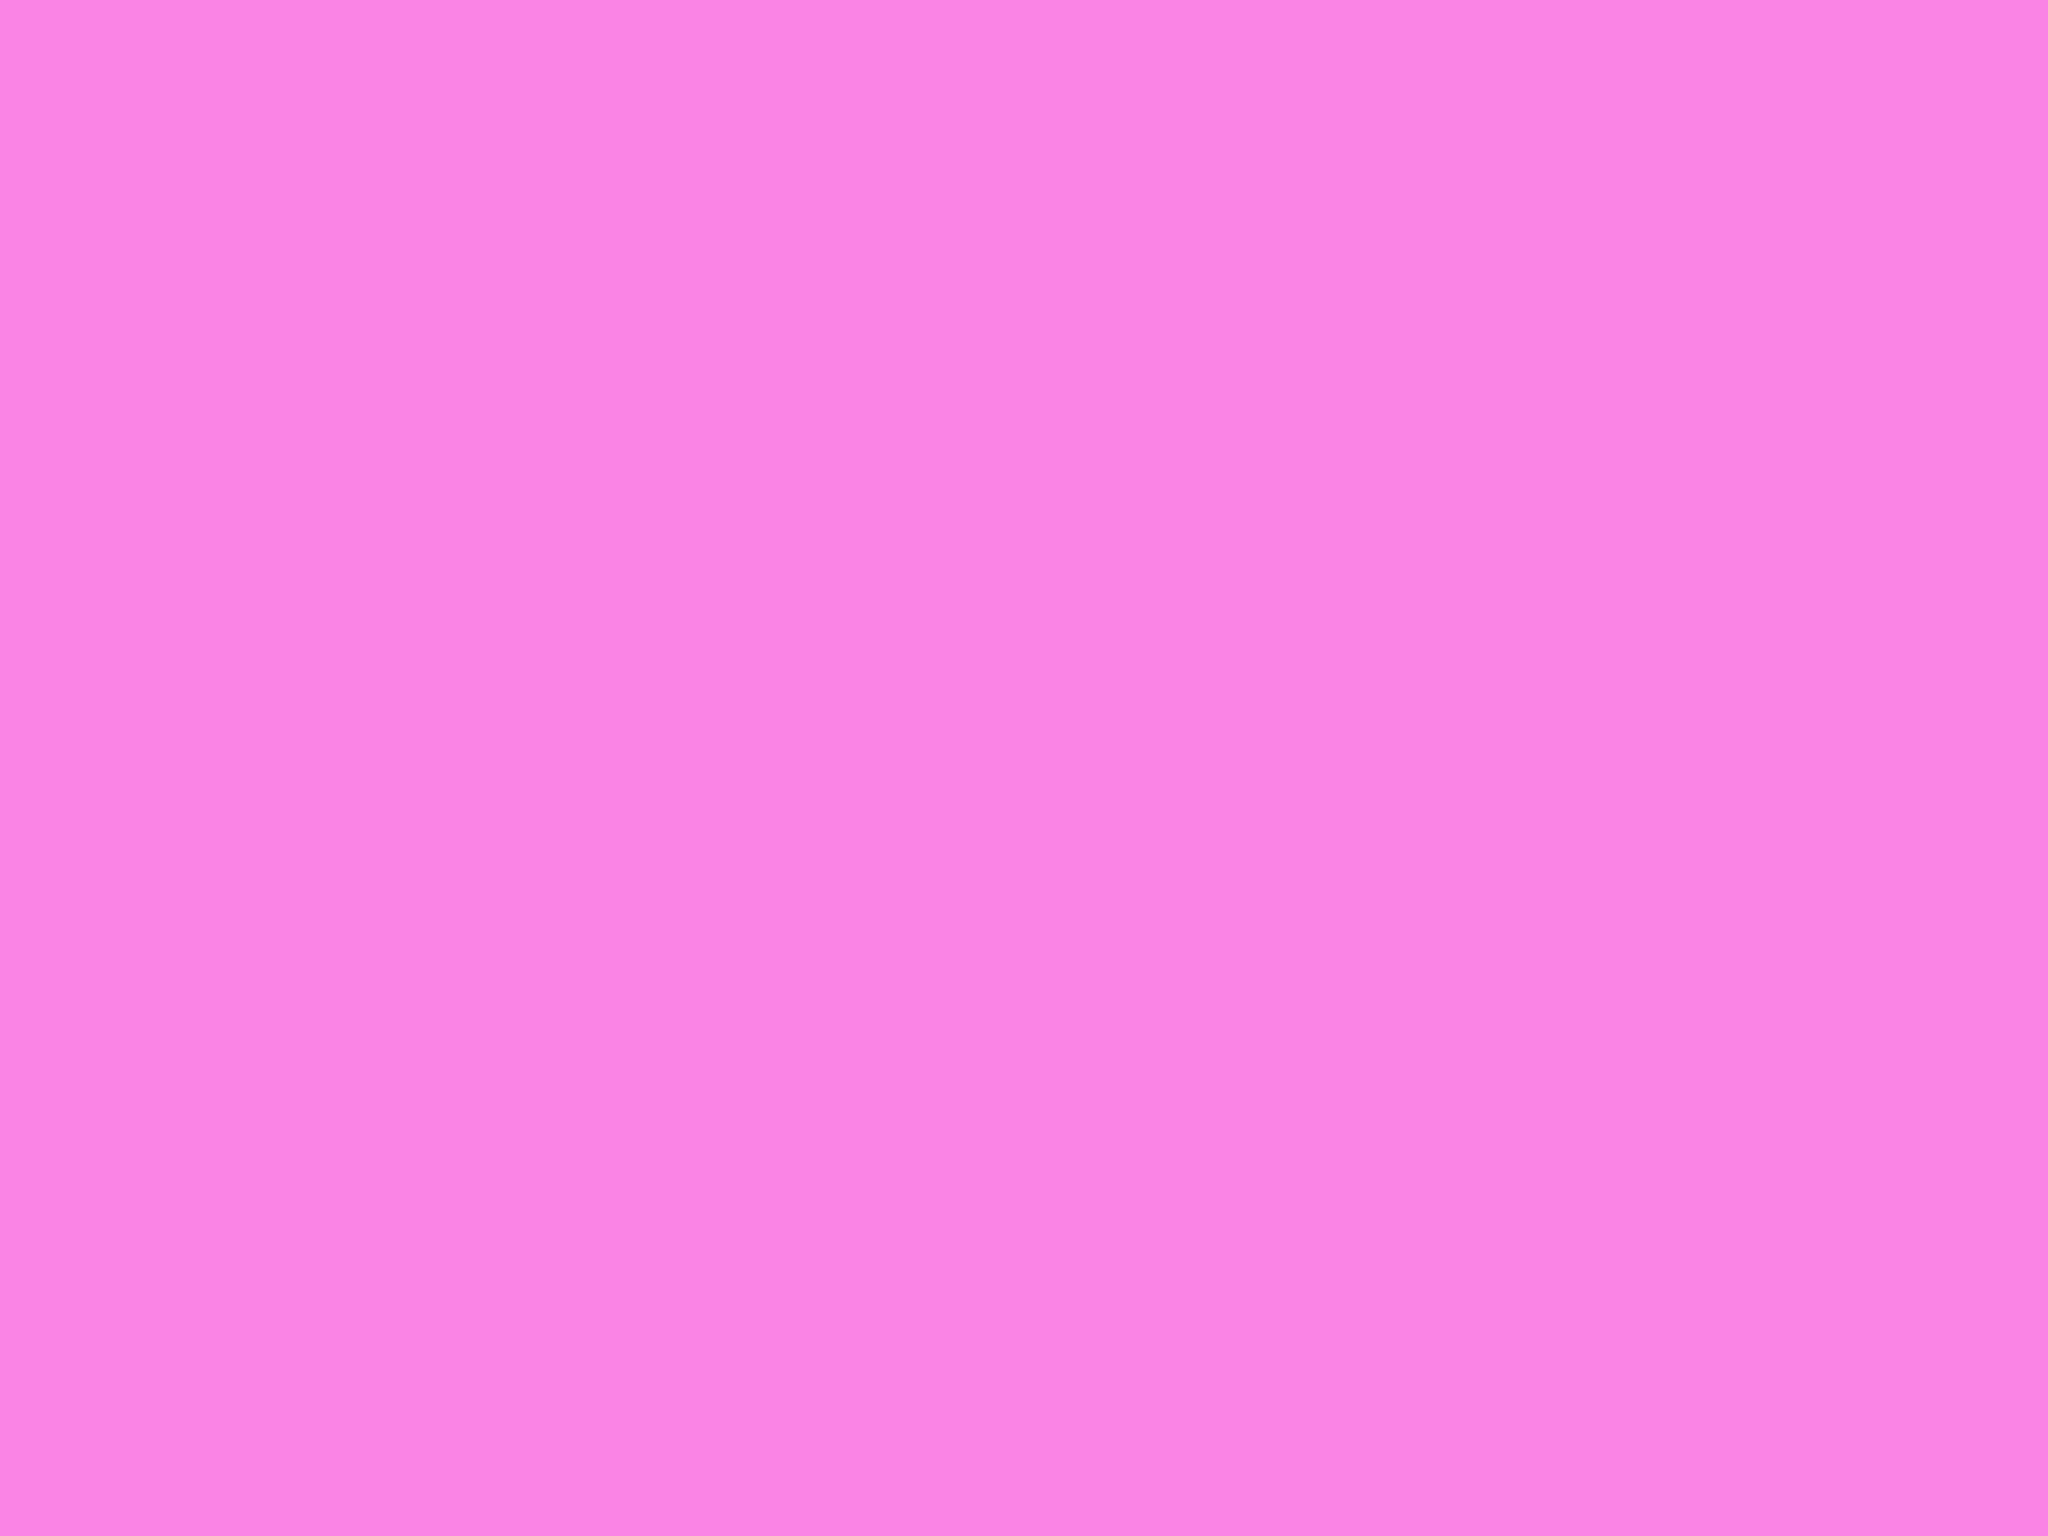 2048x1536 Pale Magenta Solid Color Background